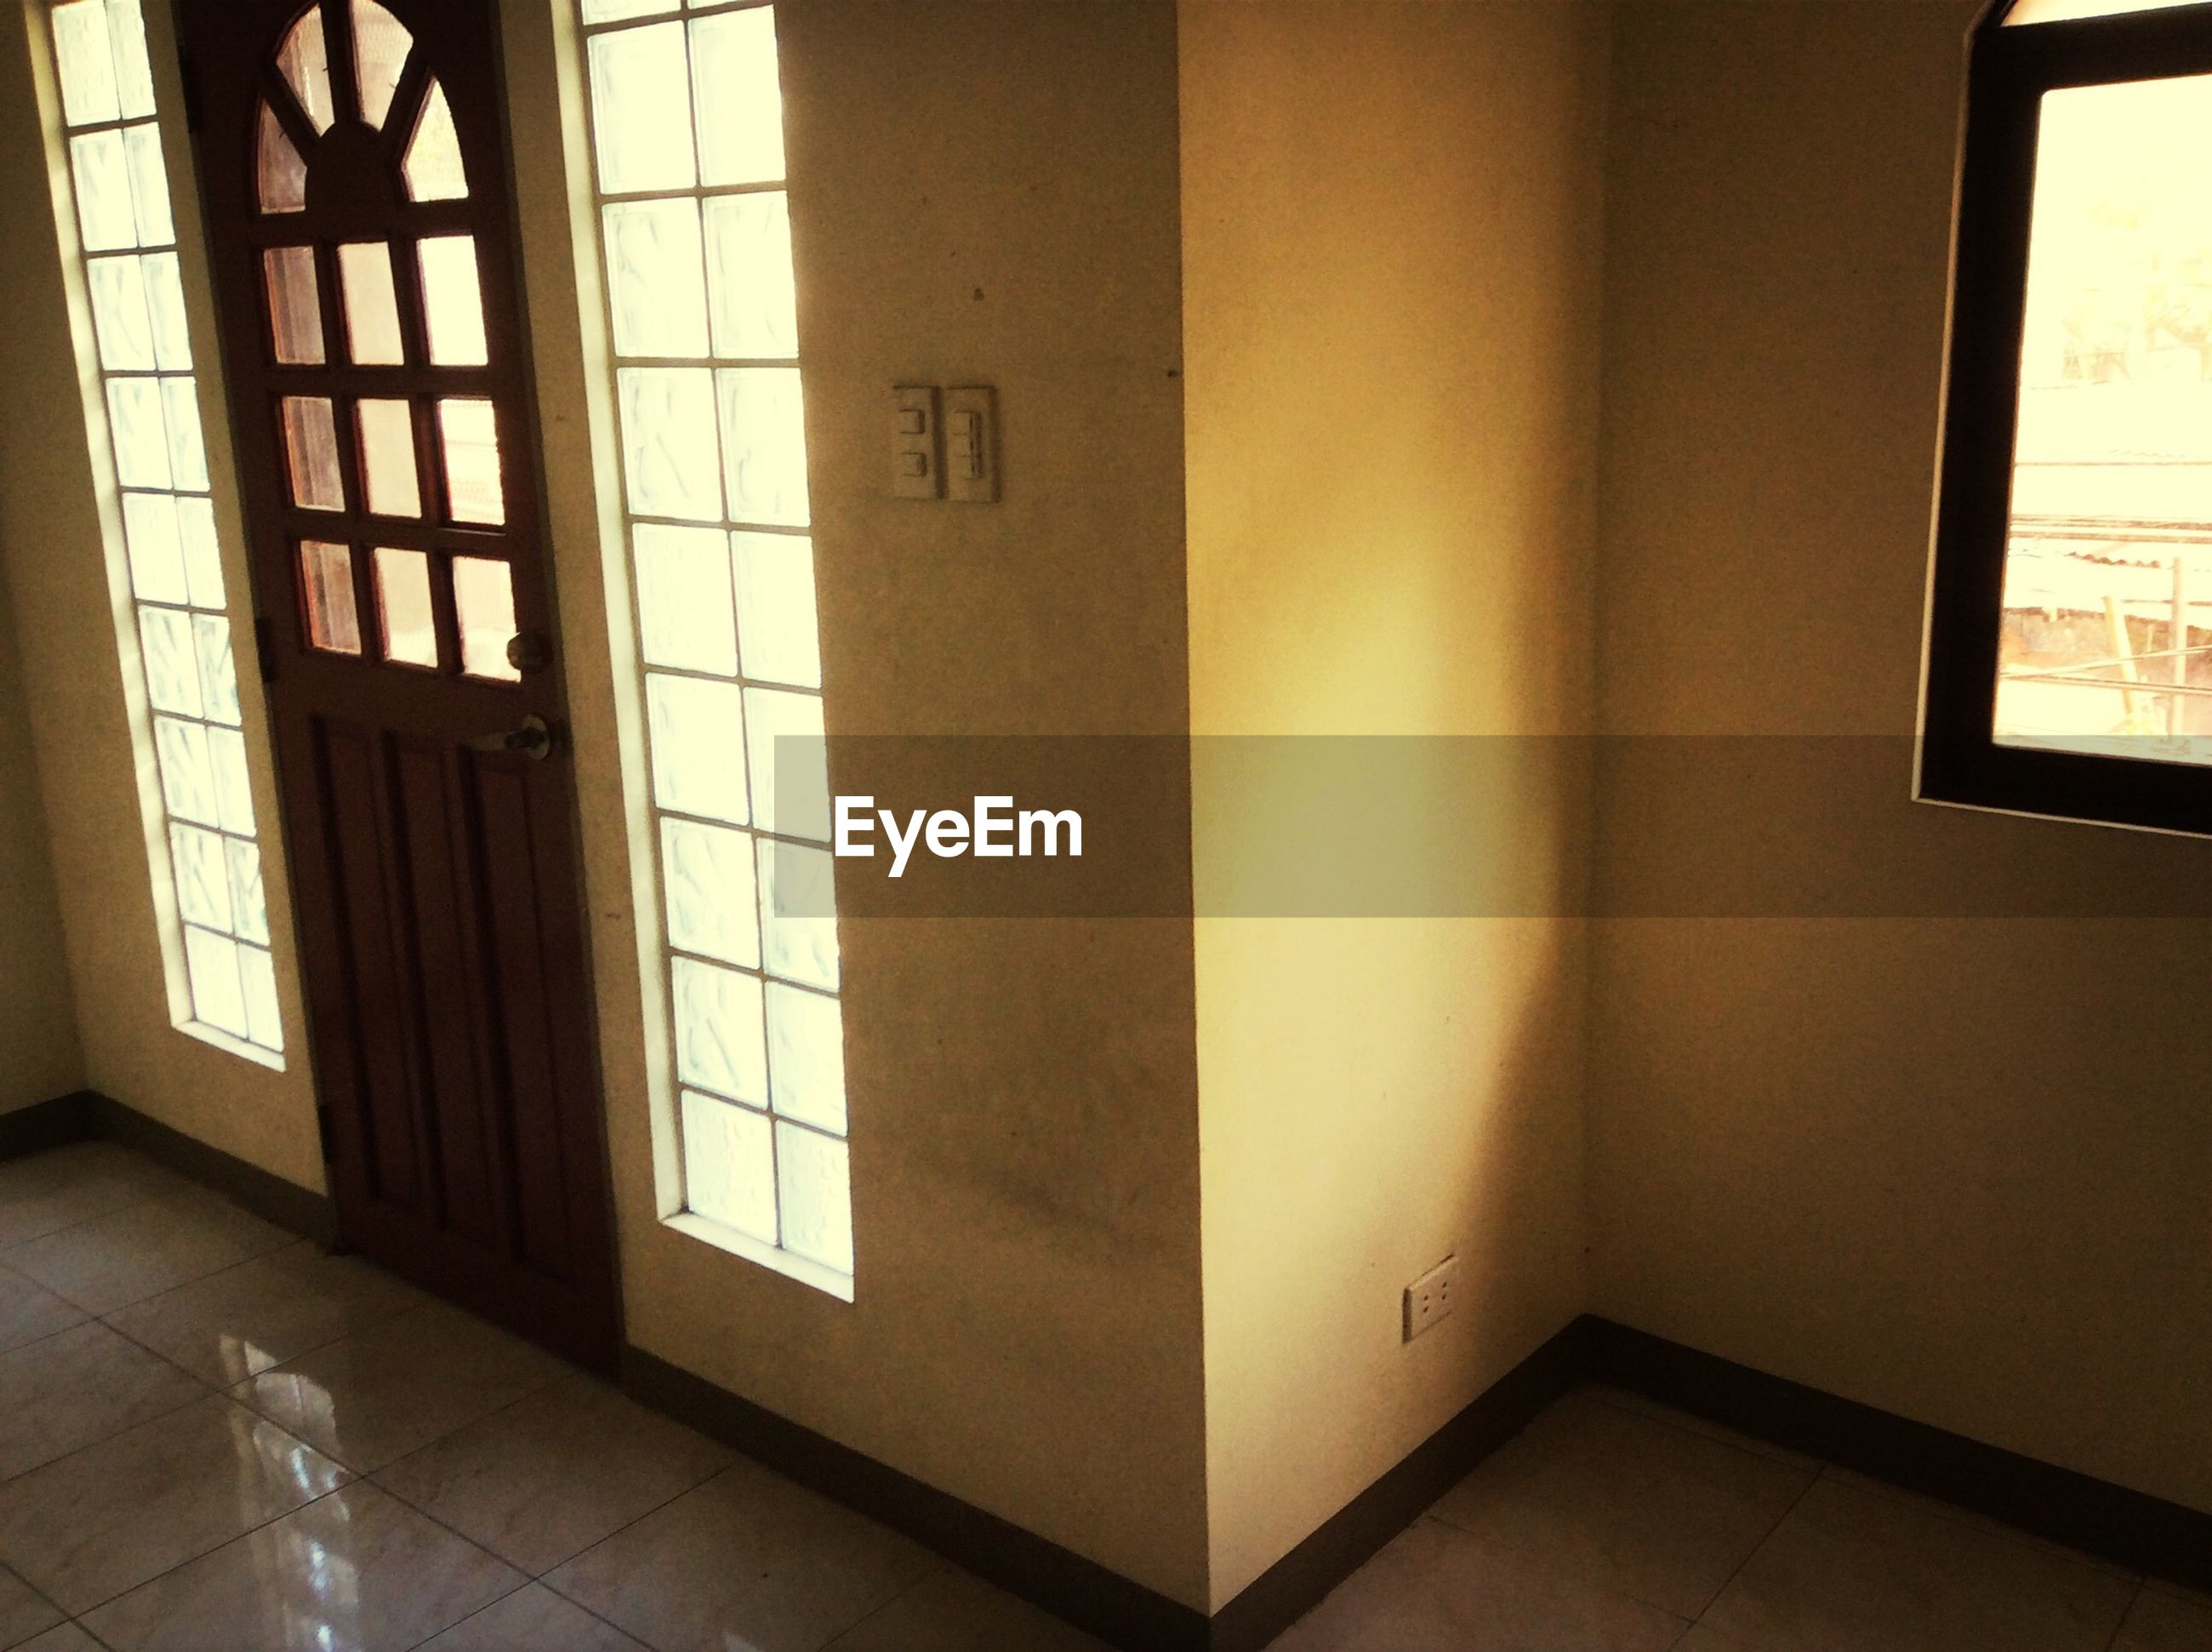 indoors, window, home interior, architecture, built structure, illuminated, glass - material, door, wall - building feature, domestic room, lighting equipment, house, wall, no people, transparent, absence, interior, room, flooring, table